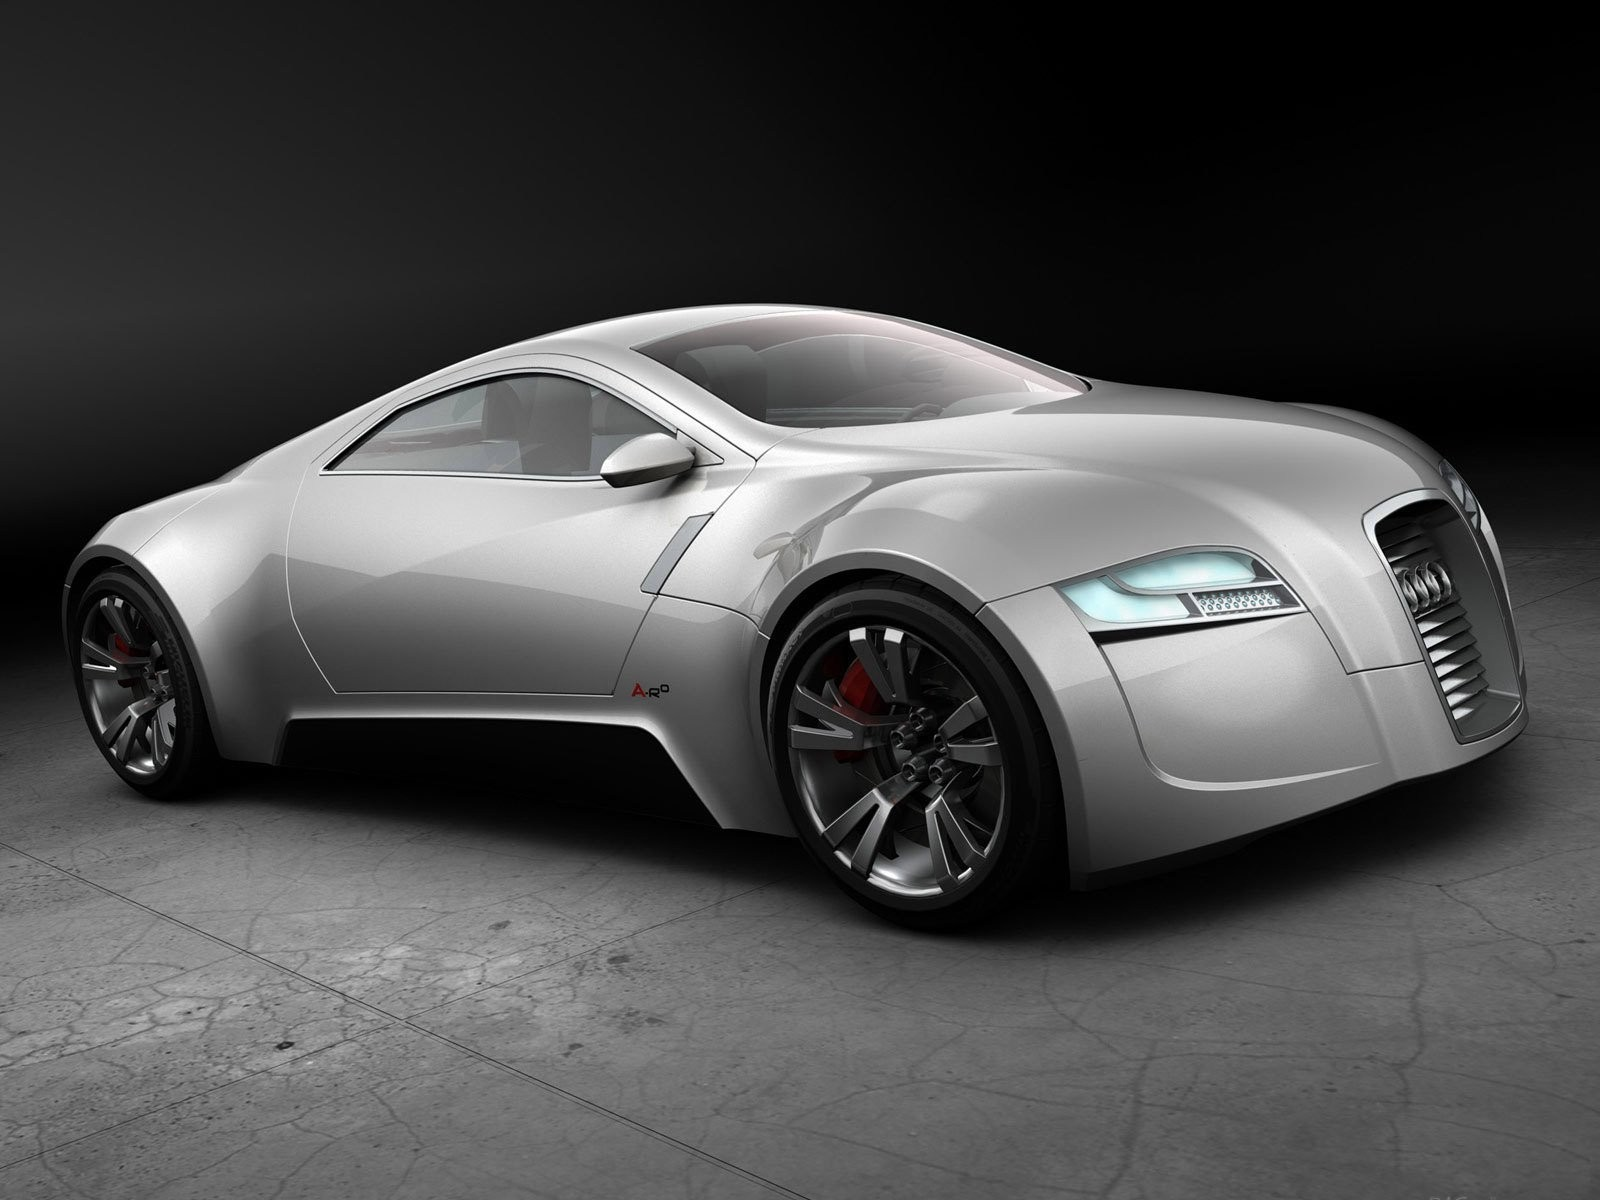 cars Audi concept art HD Wallpaper